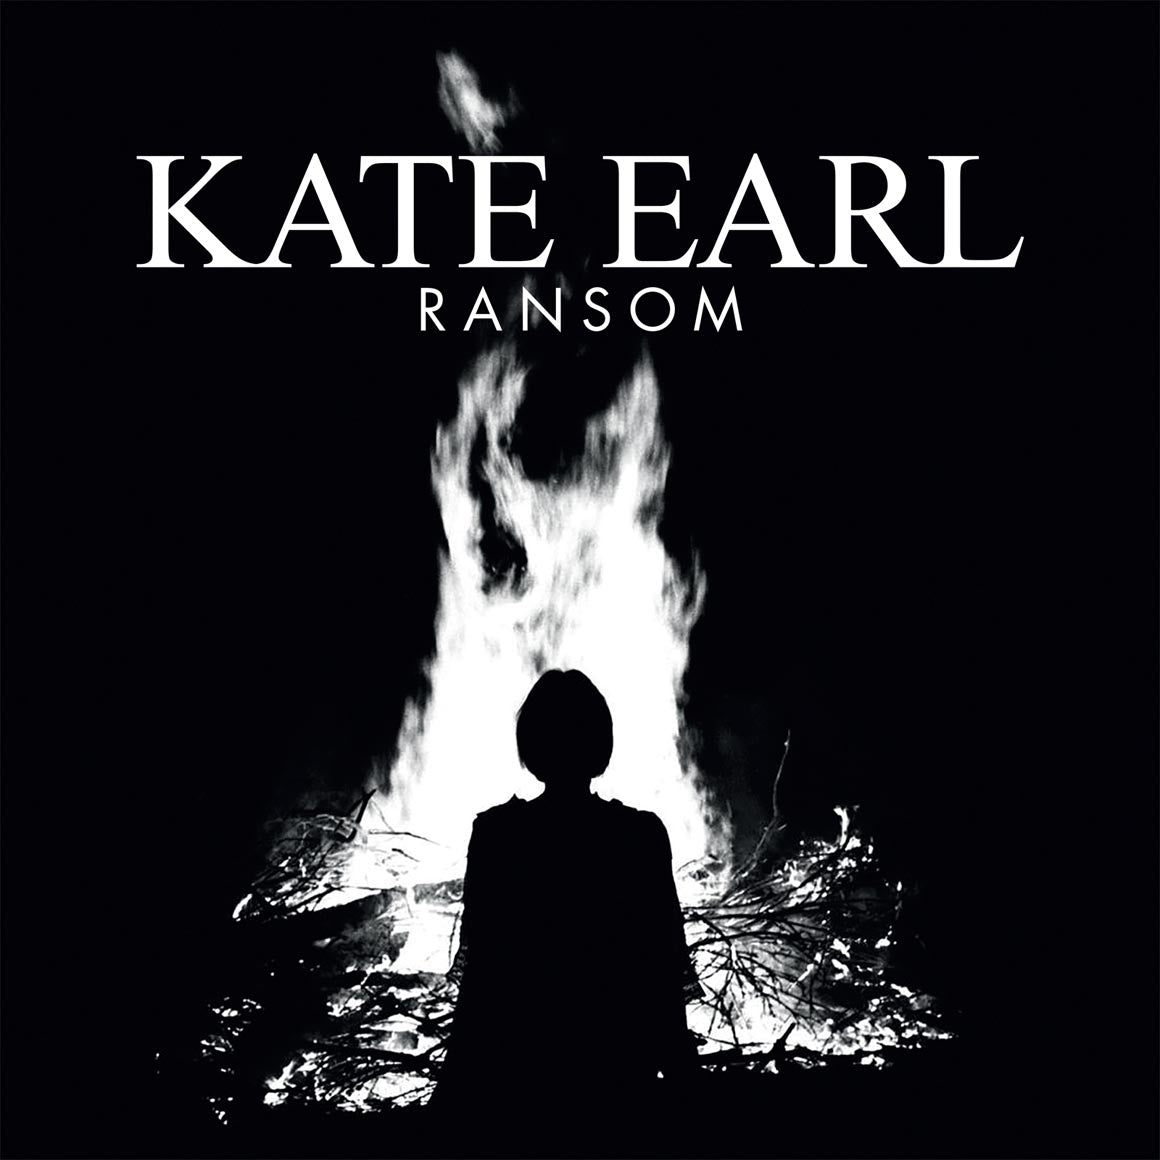 Kate Earl - Ransom EP album cover